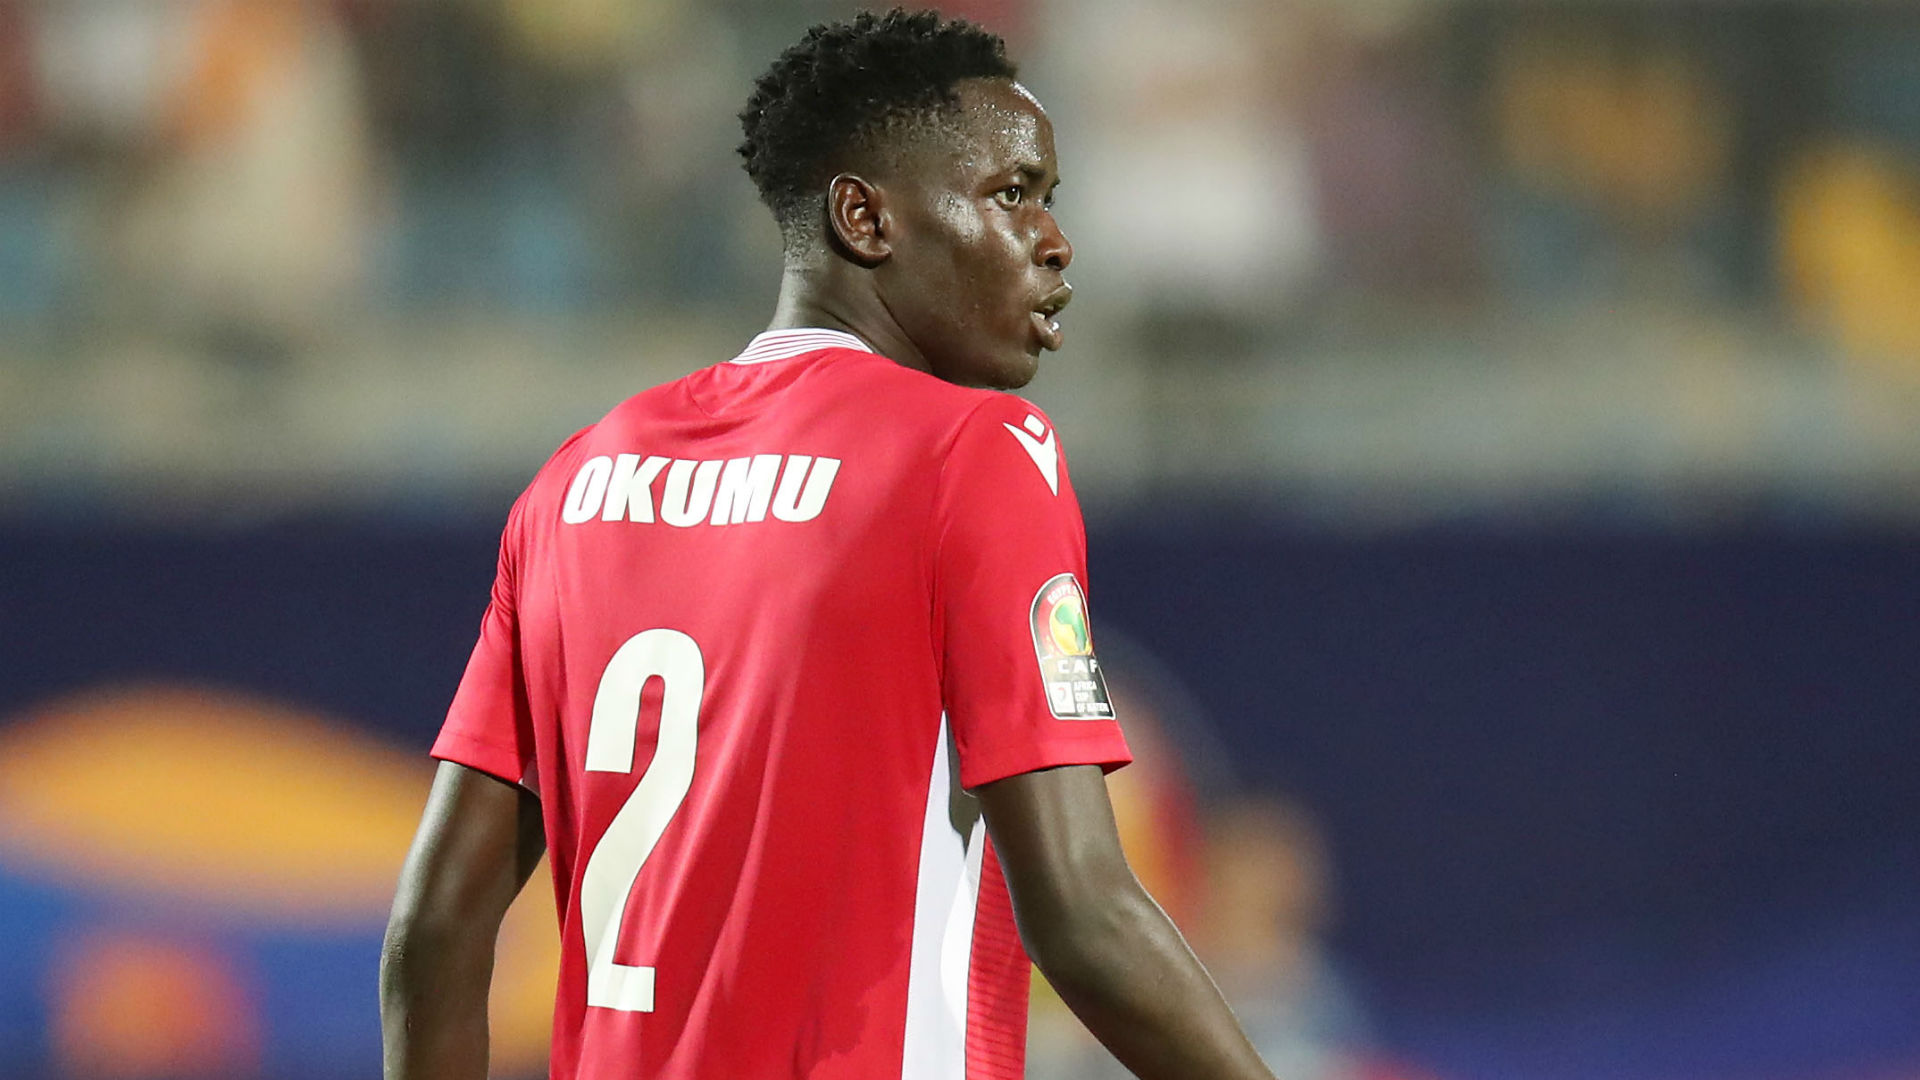 Okumu's move to KAA Gent shows nothing is impossible - Lusaka Dynamos' Otieno